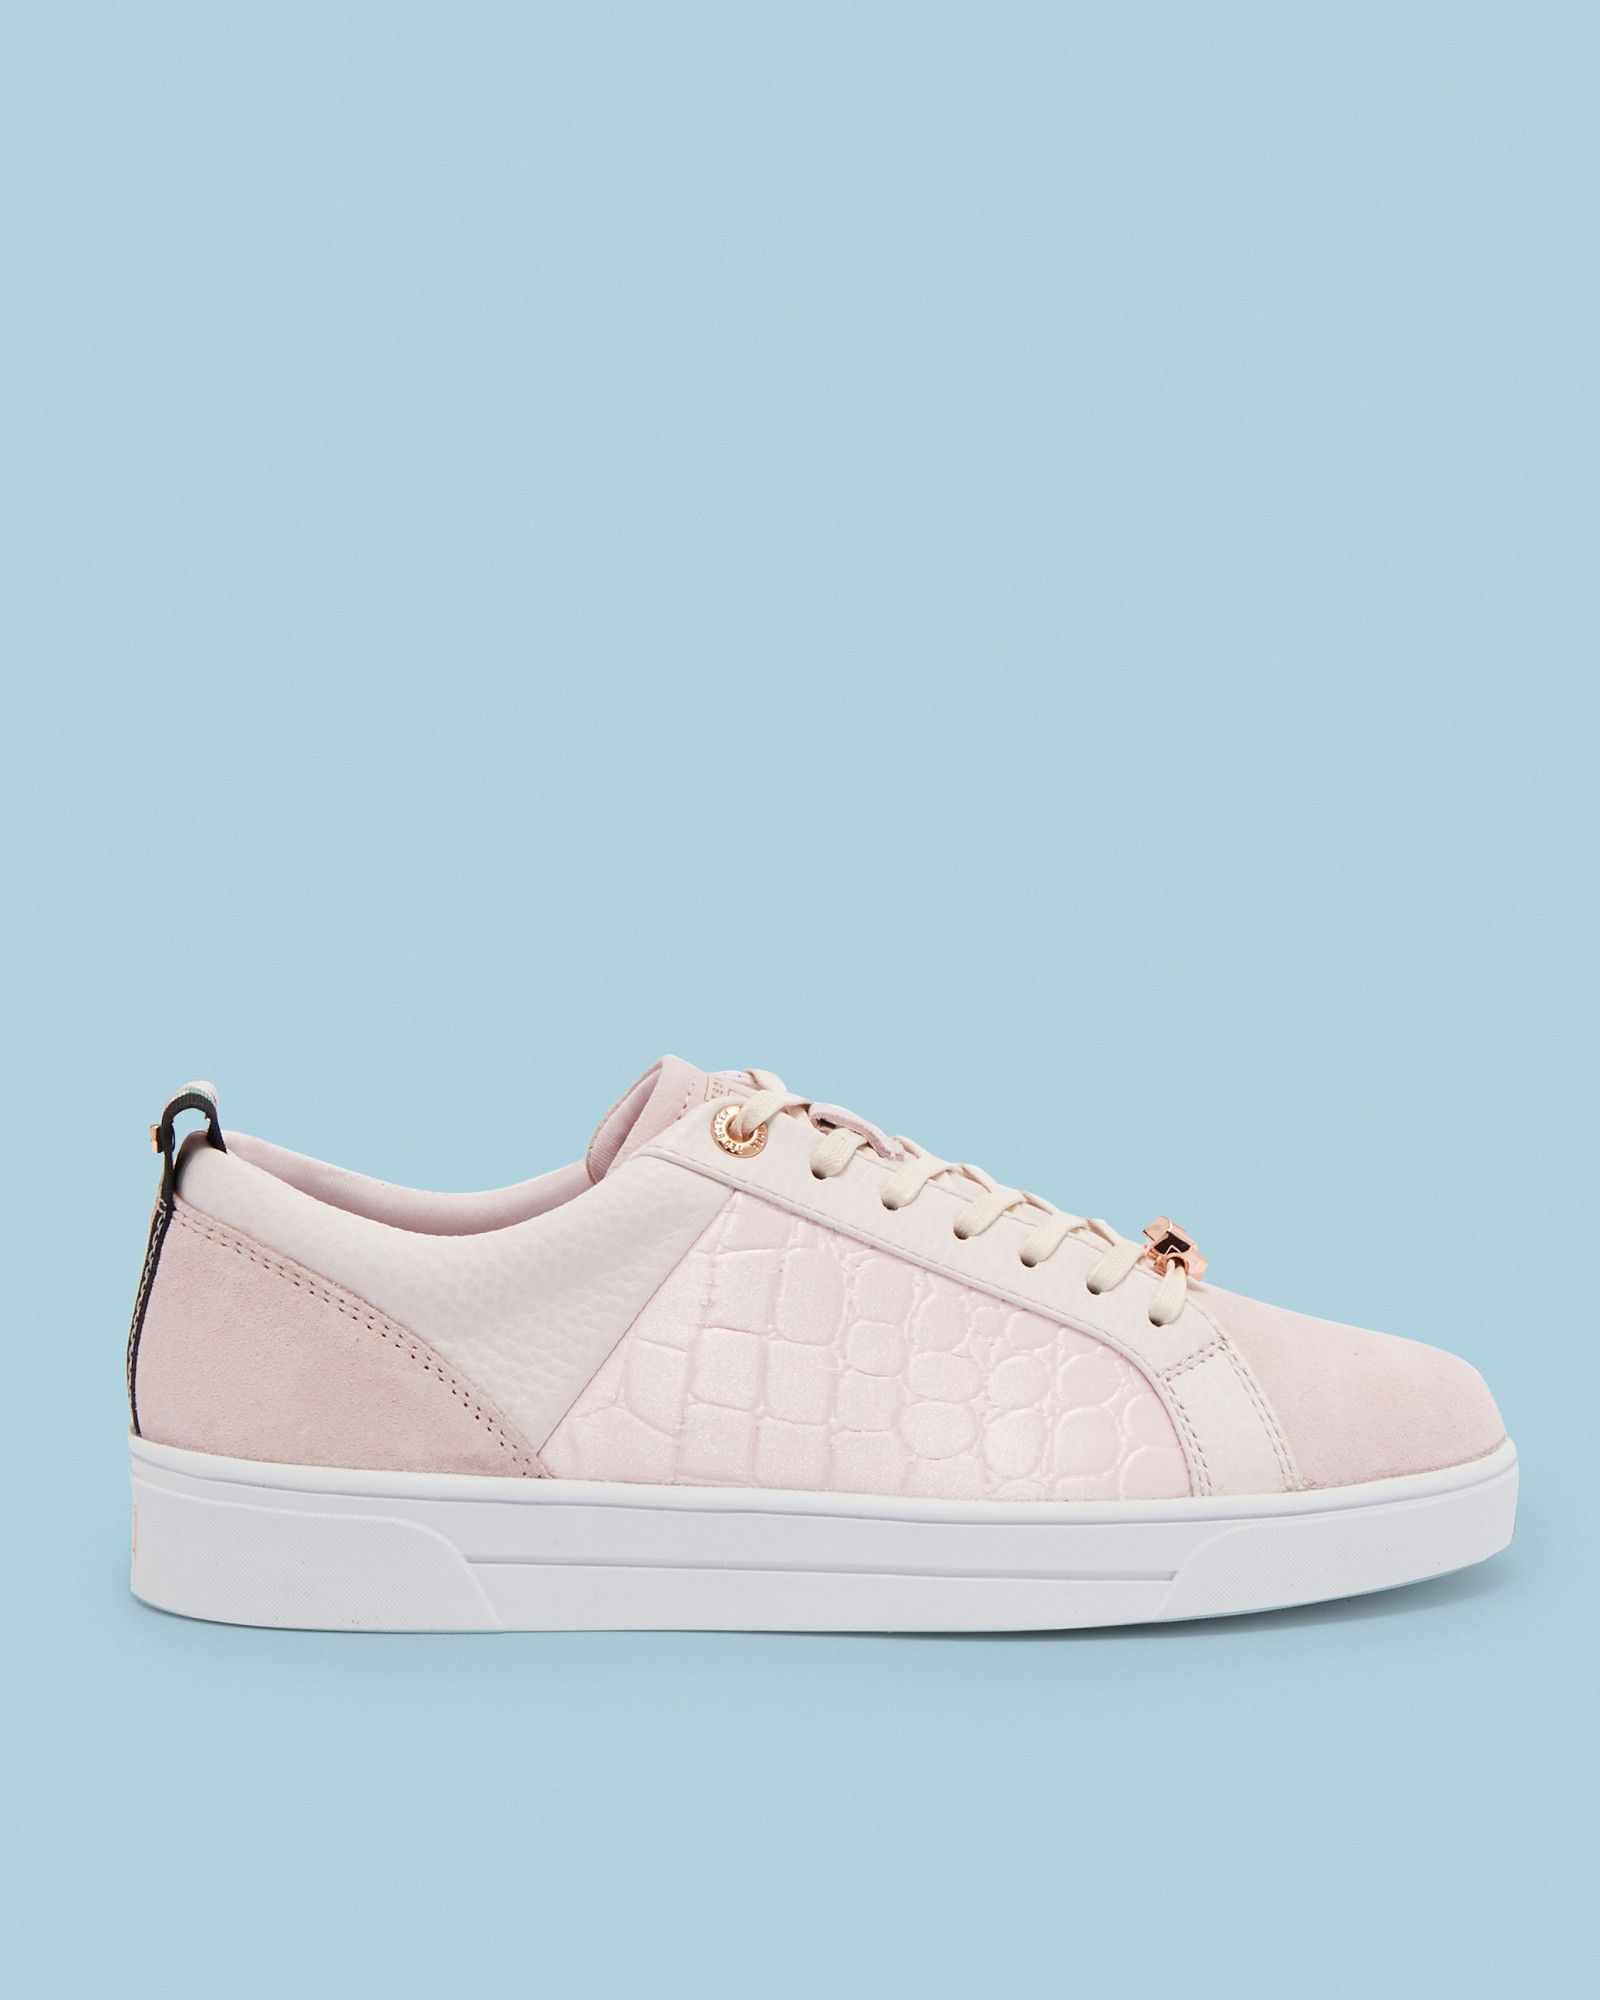 dbb37e292fe98f Ted Baker Contrast trim leather trainers Light Pink